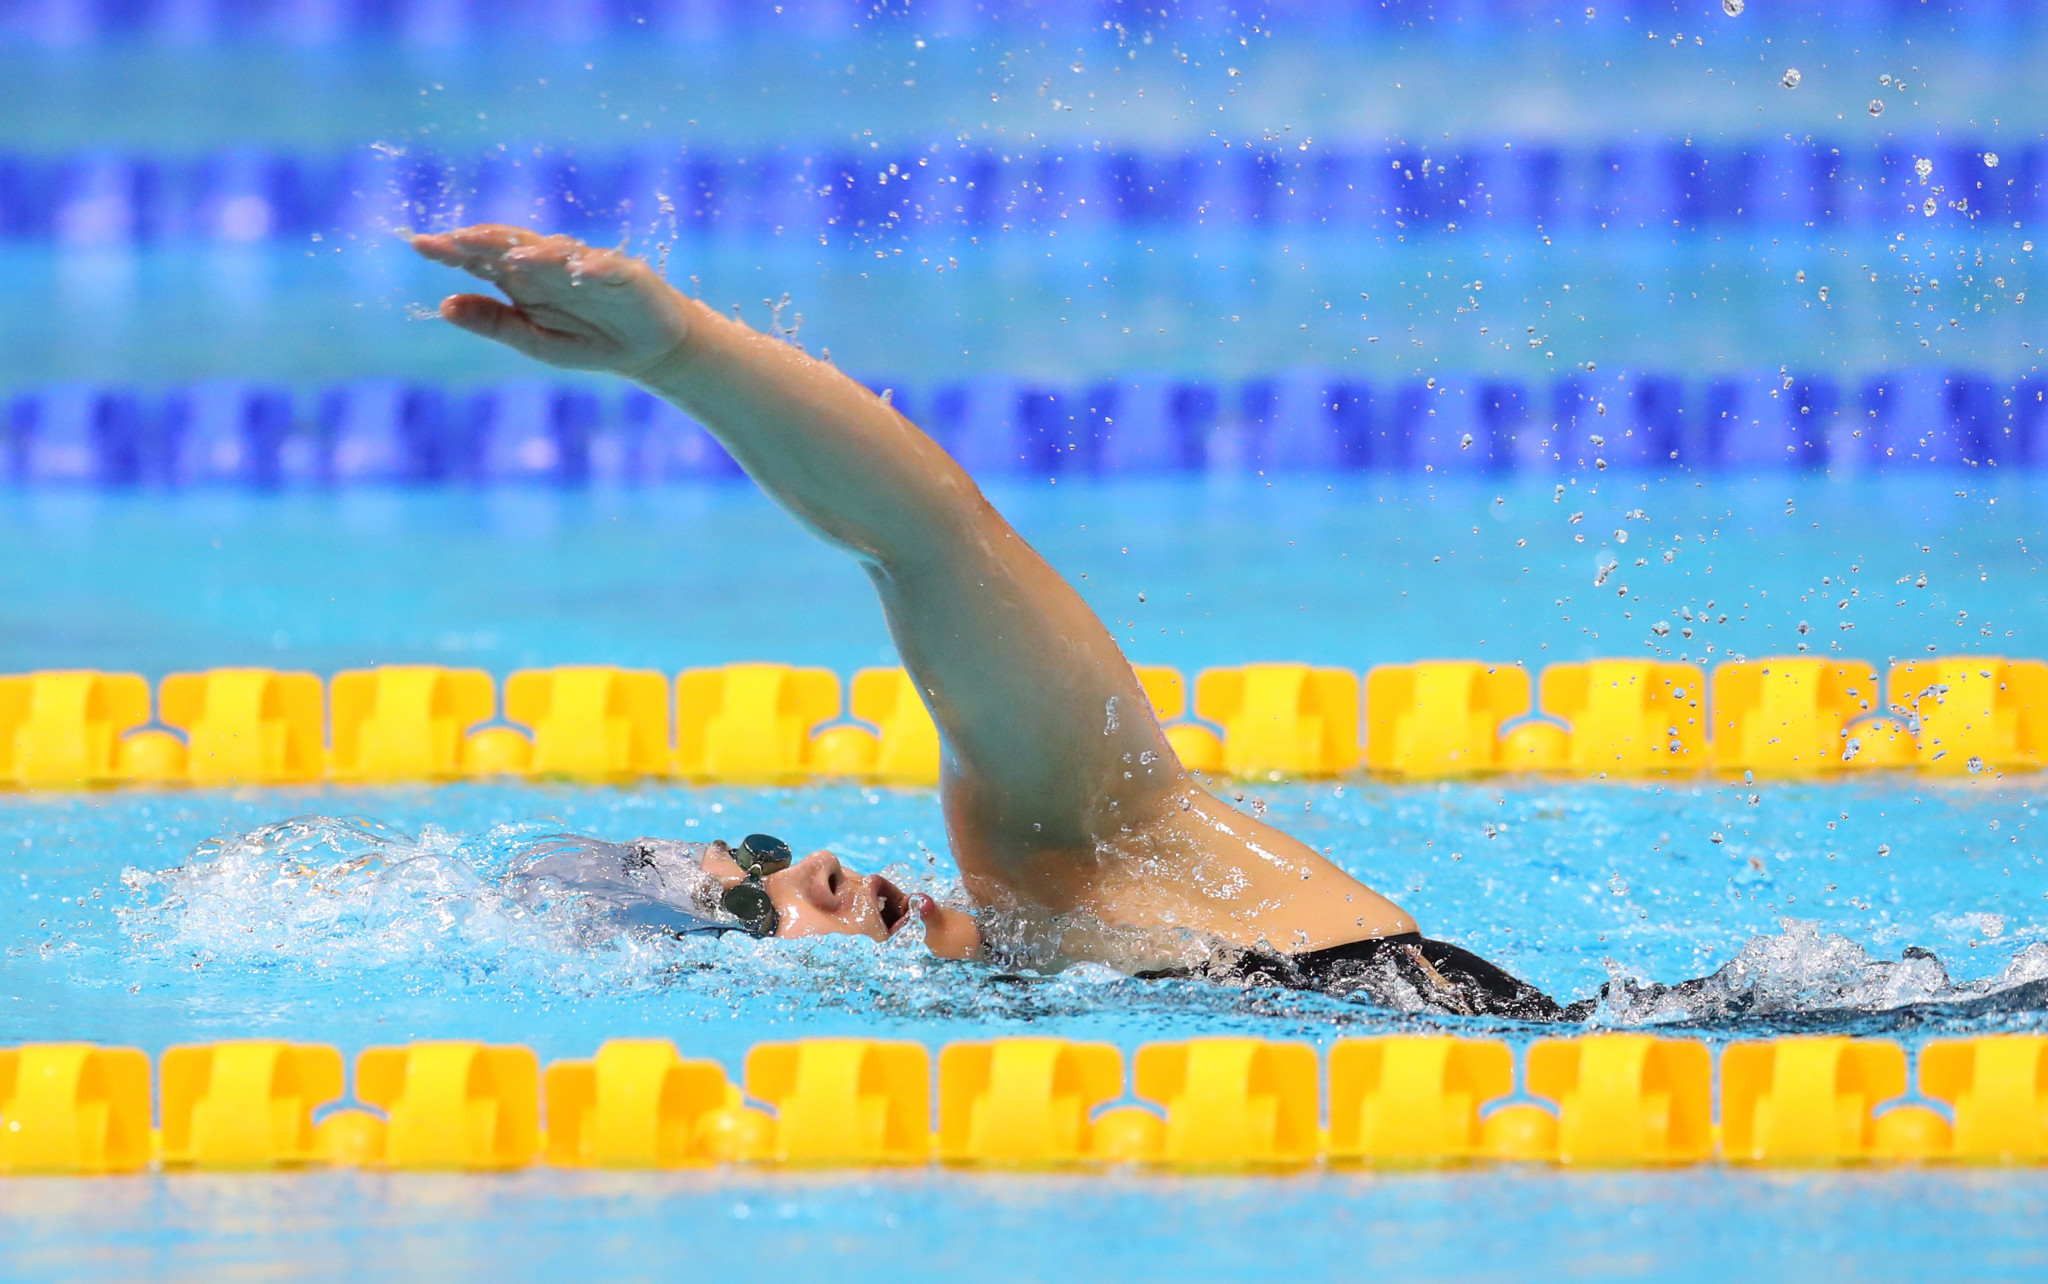 Yuyan and Zhdanov star as six world records fall at World Para Swimming Championships